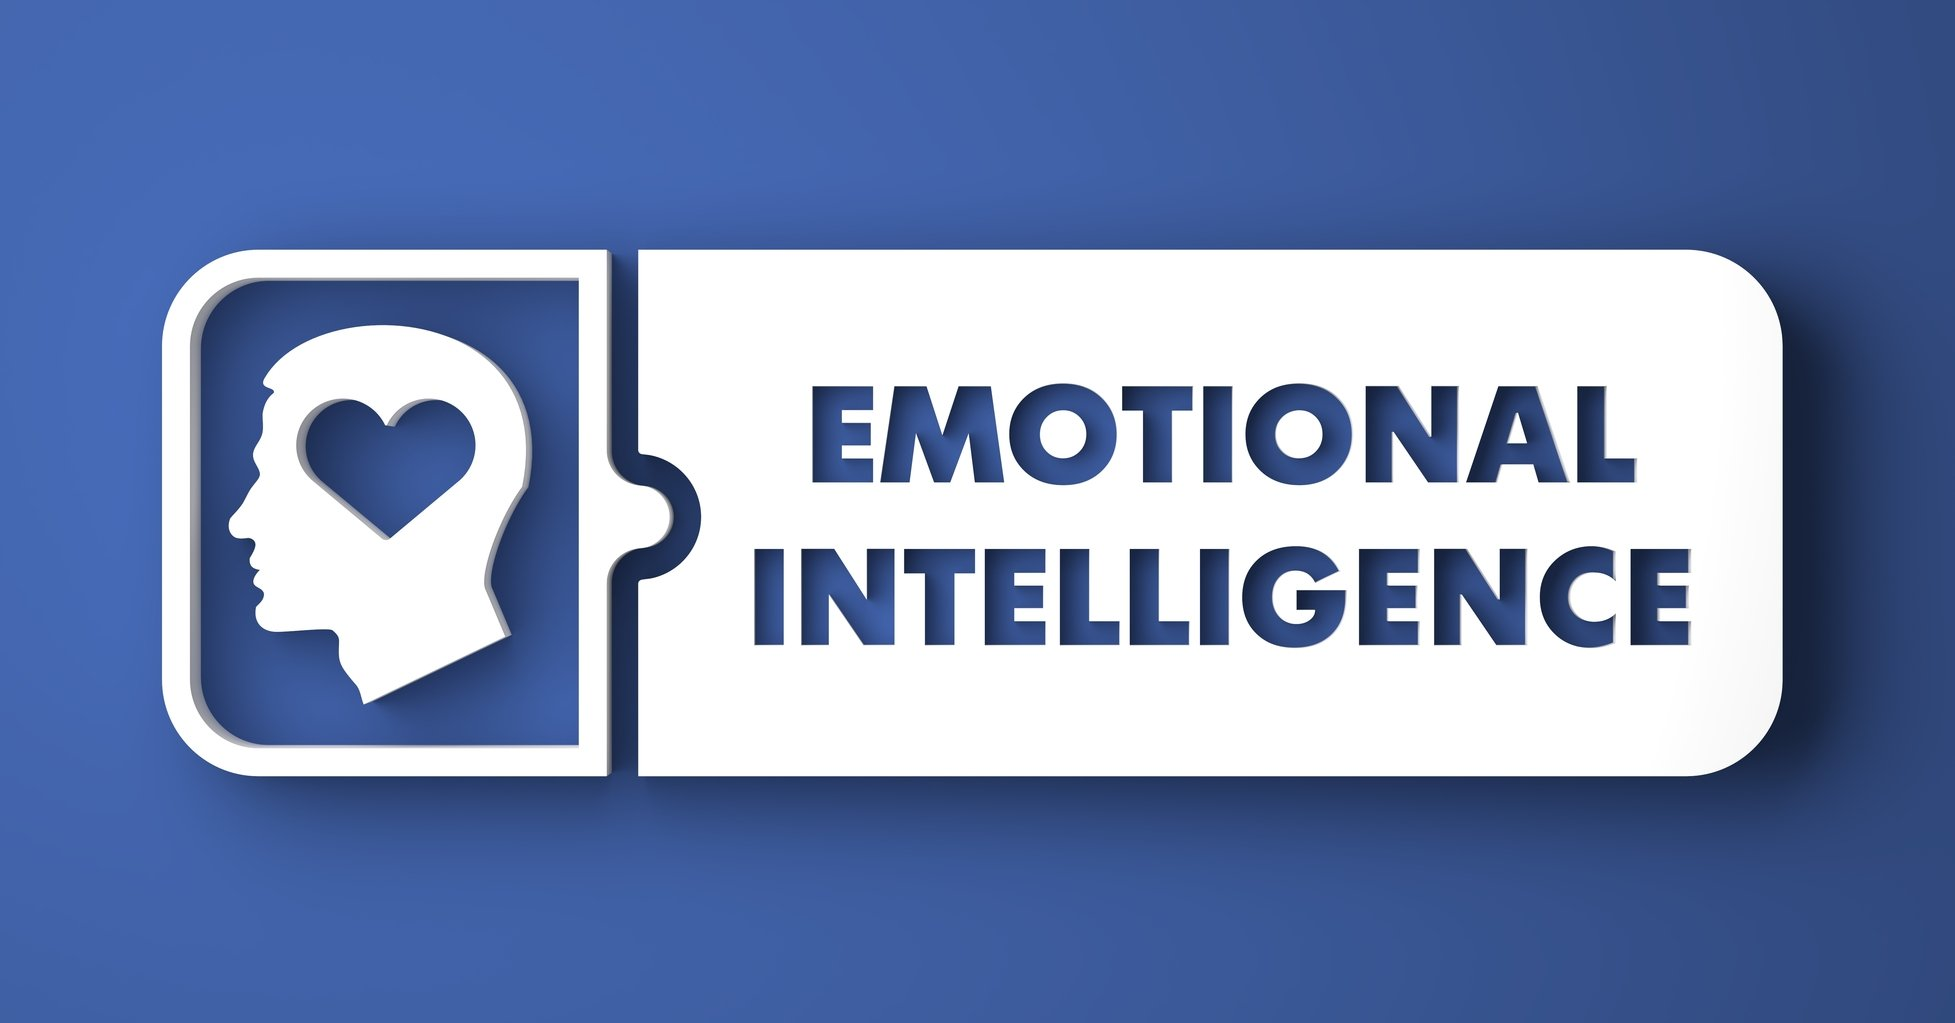 emotional inteligence 02012014 some of the greatest moments in human history were fueled by emotional intelligence when martin luther king, jr presented his dream, he chose language.